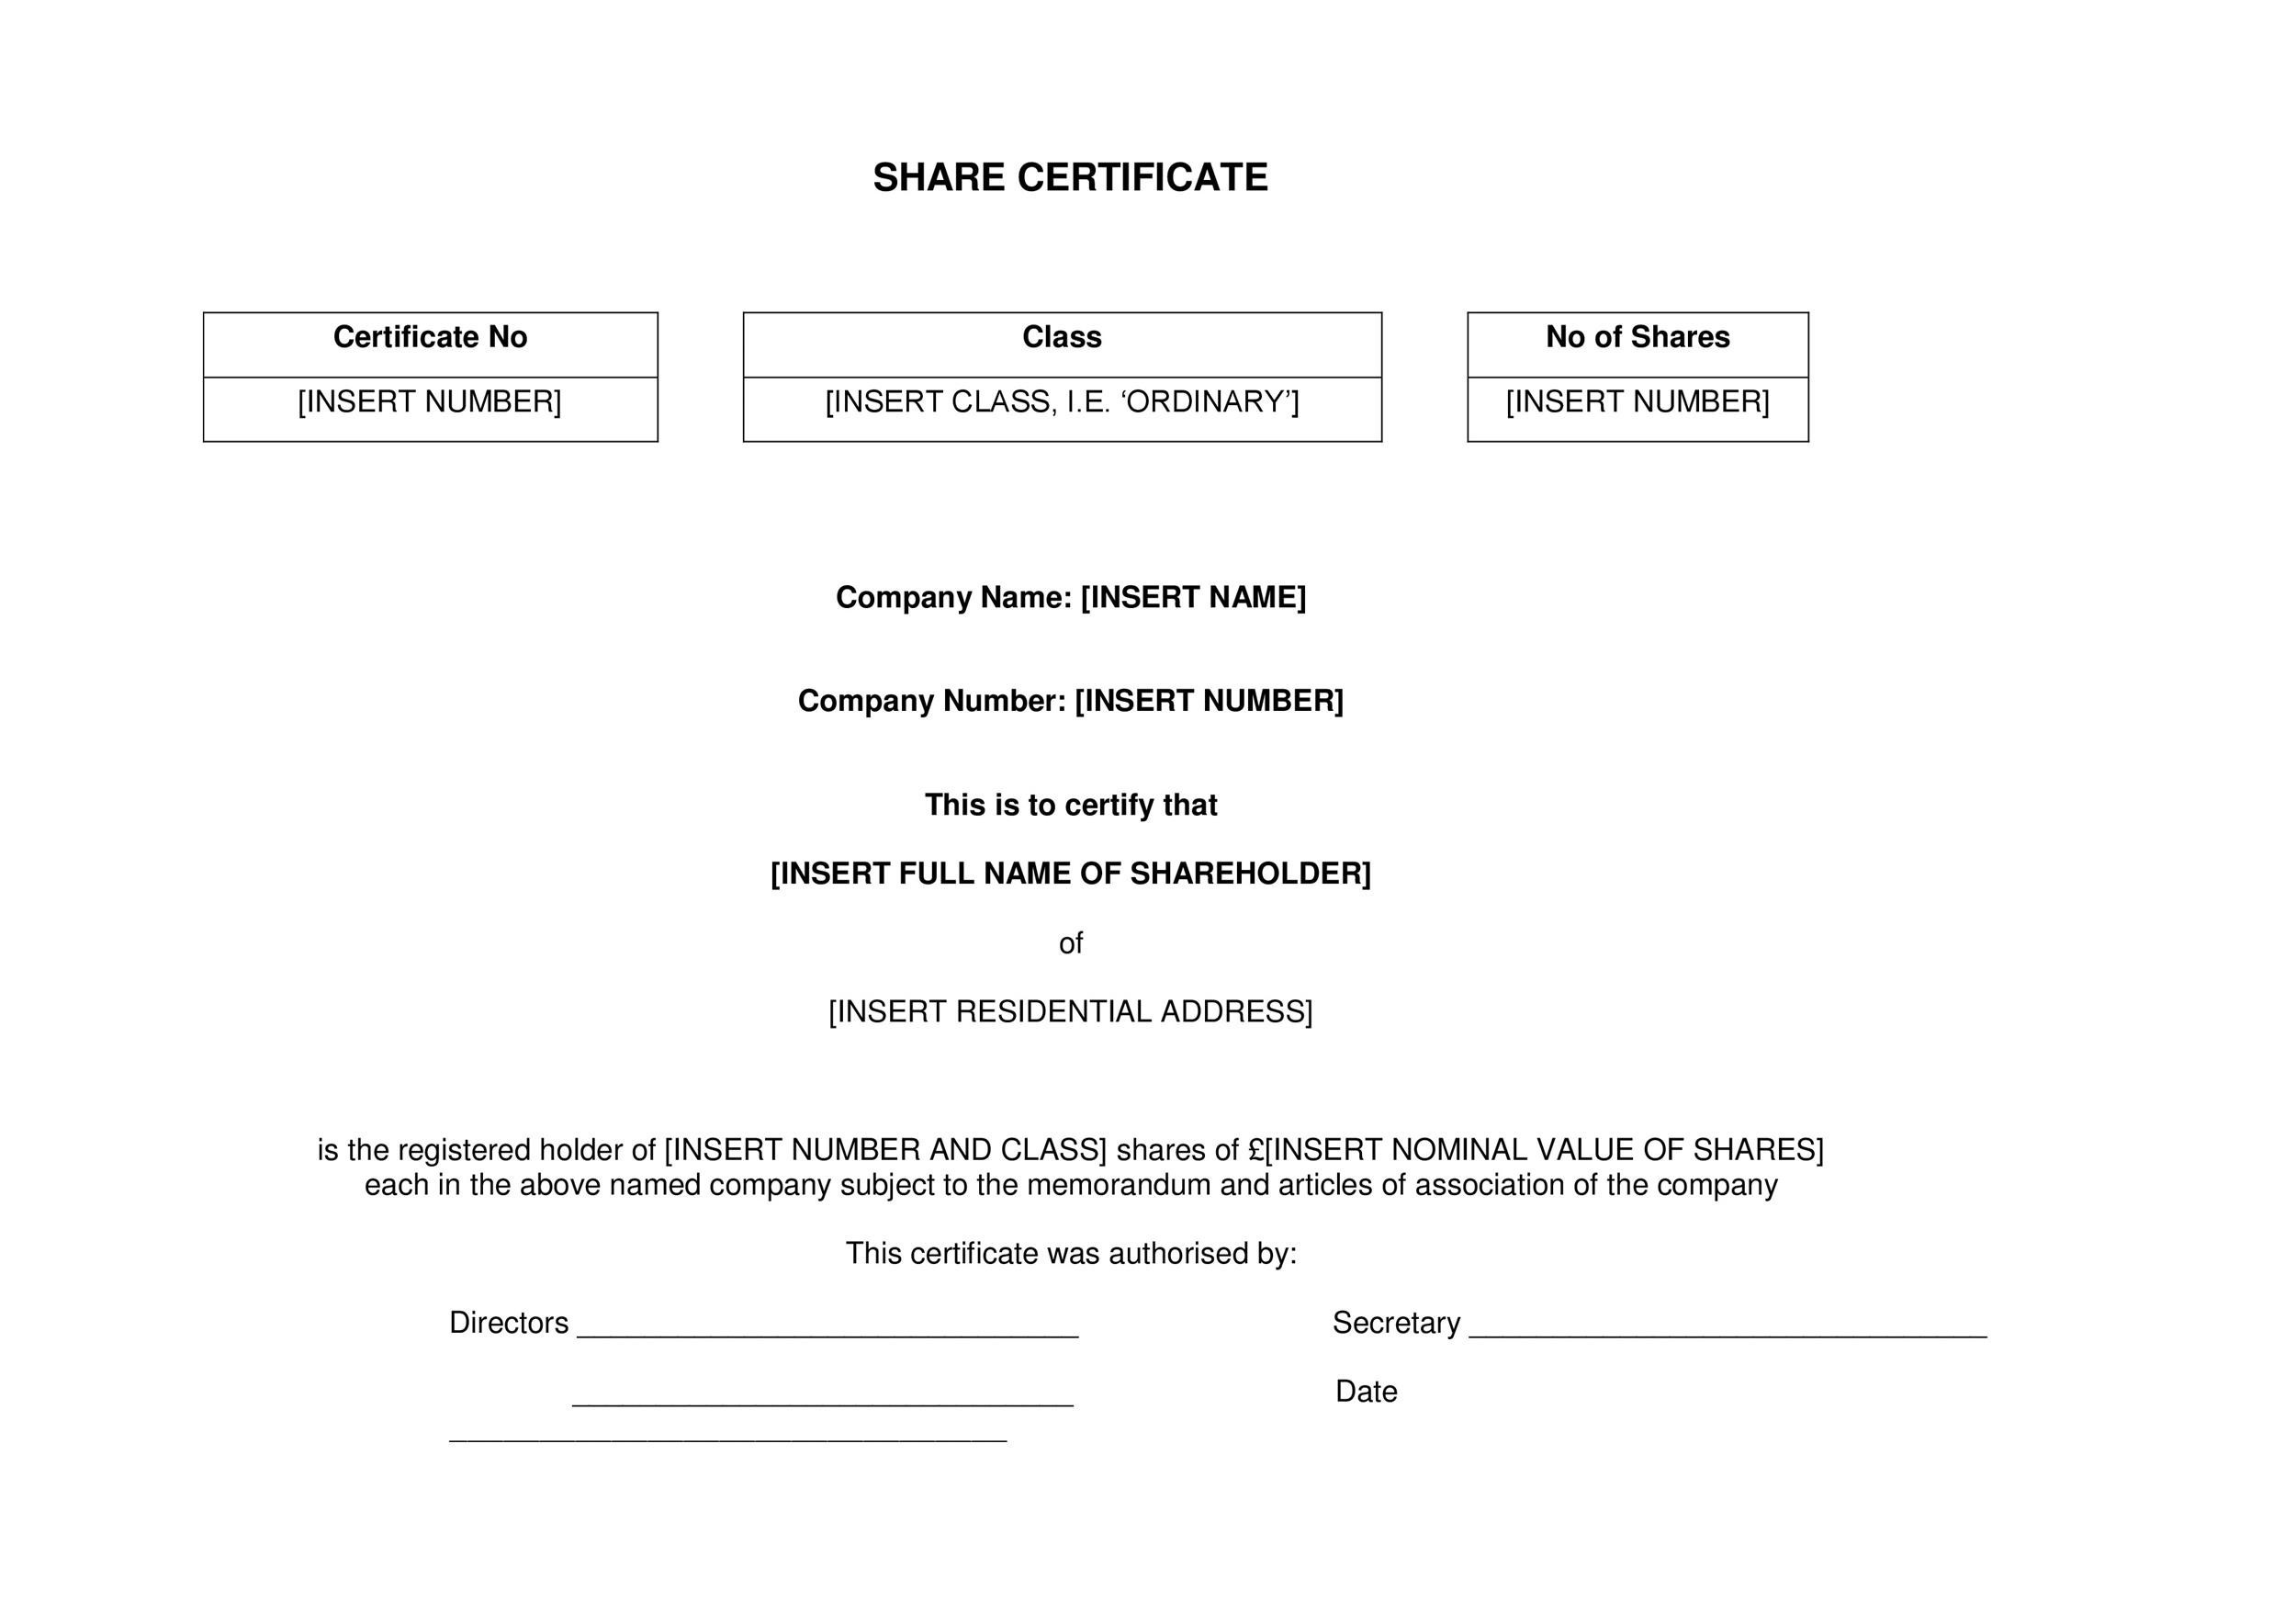 40+ Free Stock Certificate Templates (Word, PDF) - Template Lab - download certificate templates